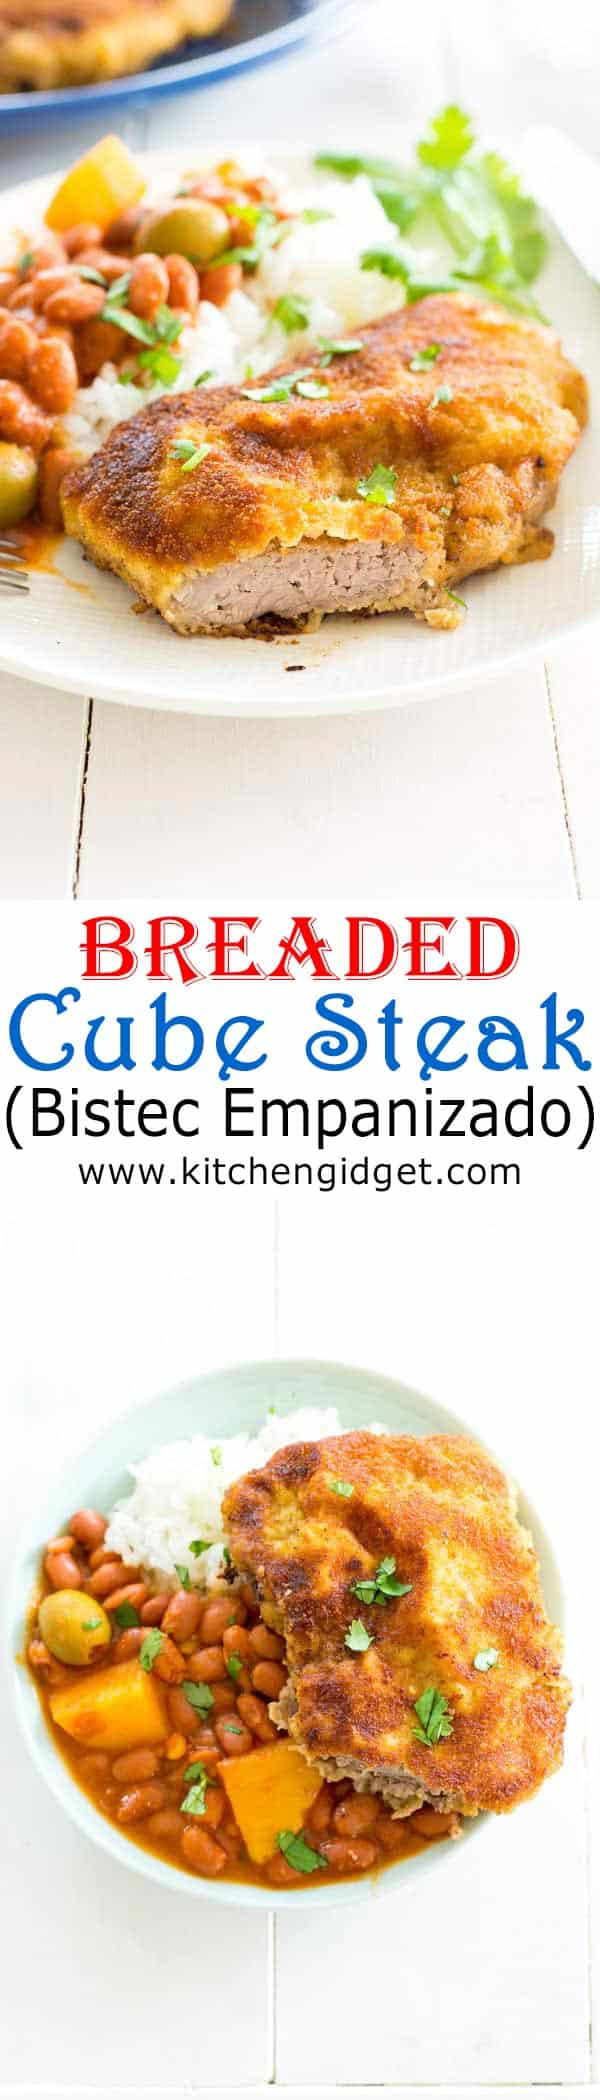 Easy breaded cube steak recipe (bistec empanizado) is a staple in Puerto Rican cooking. Seasoned, breaded and fried to crispy perfection!